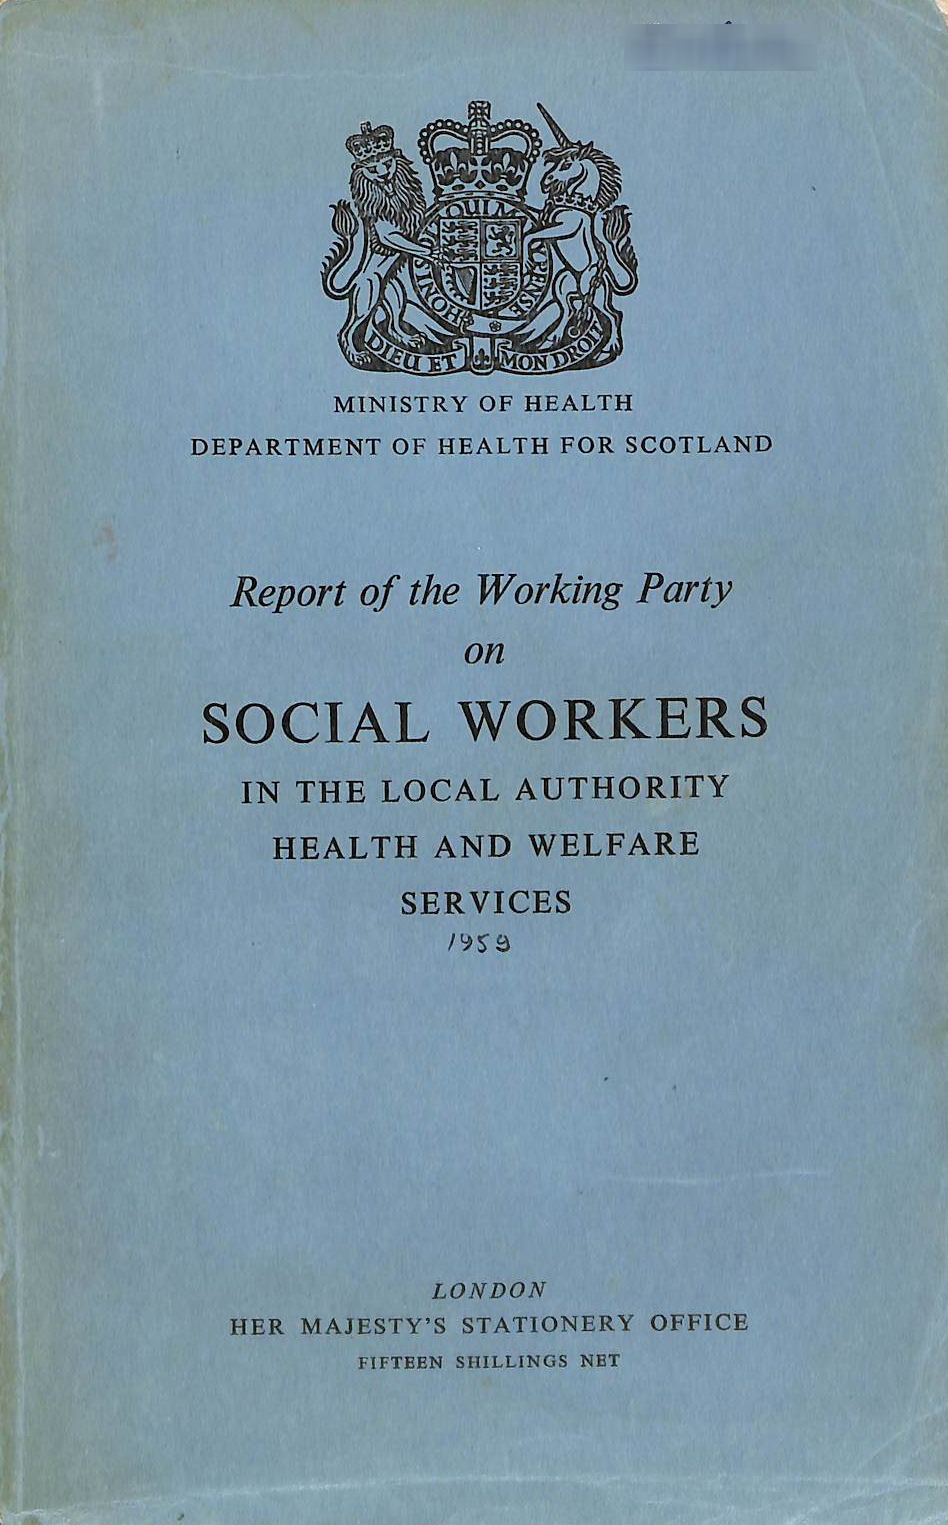 Image for Report of the Working Party on Social Workers in the Local Authority Health and Welfare Services